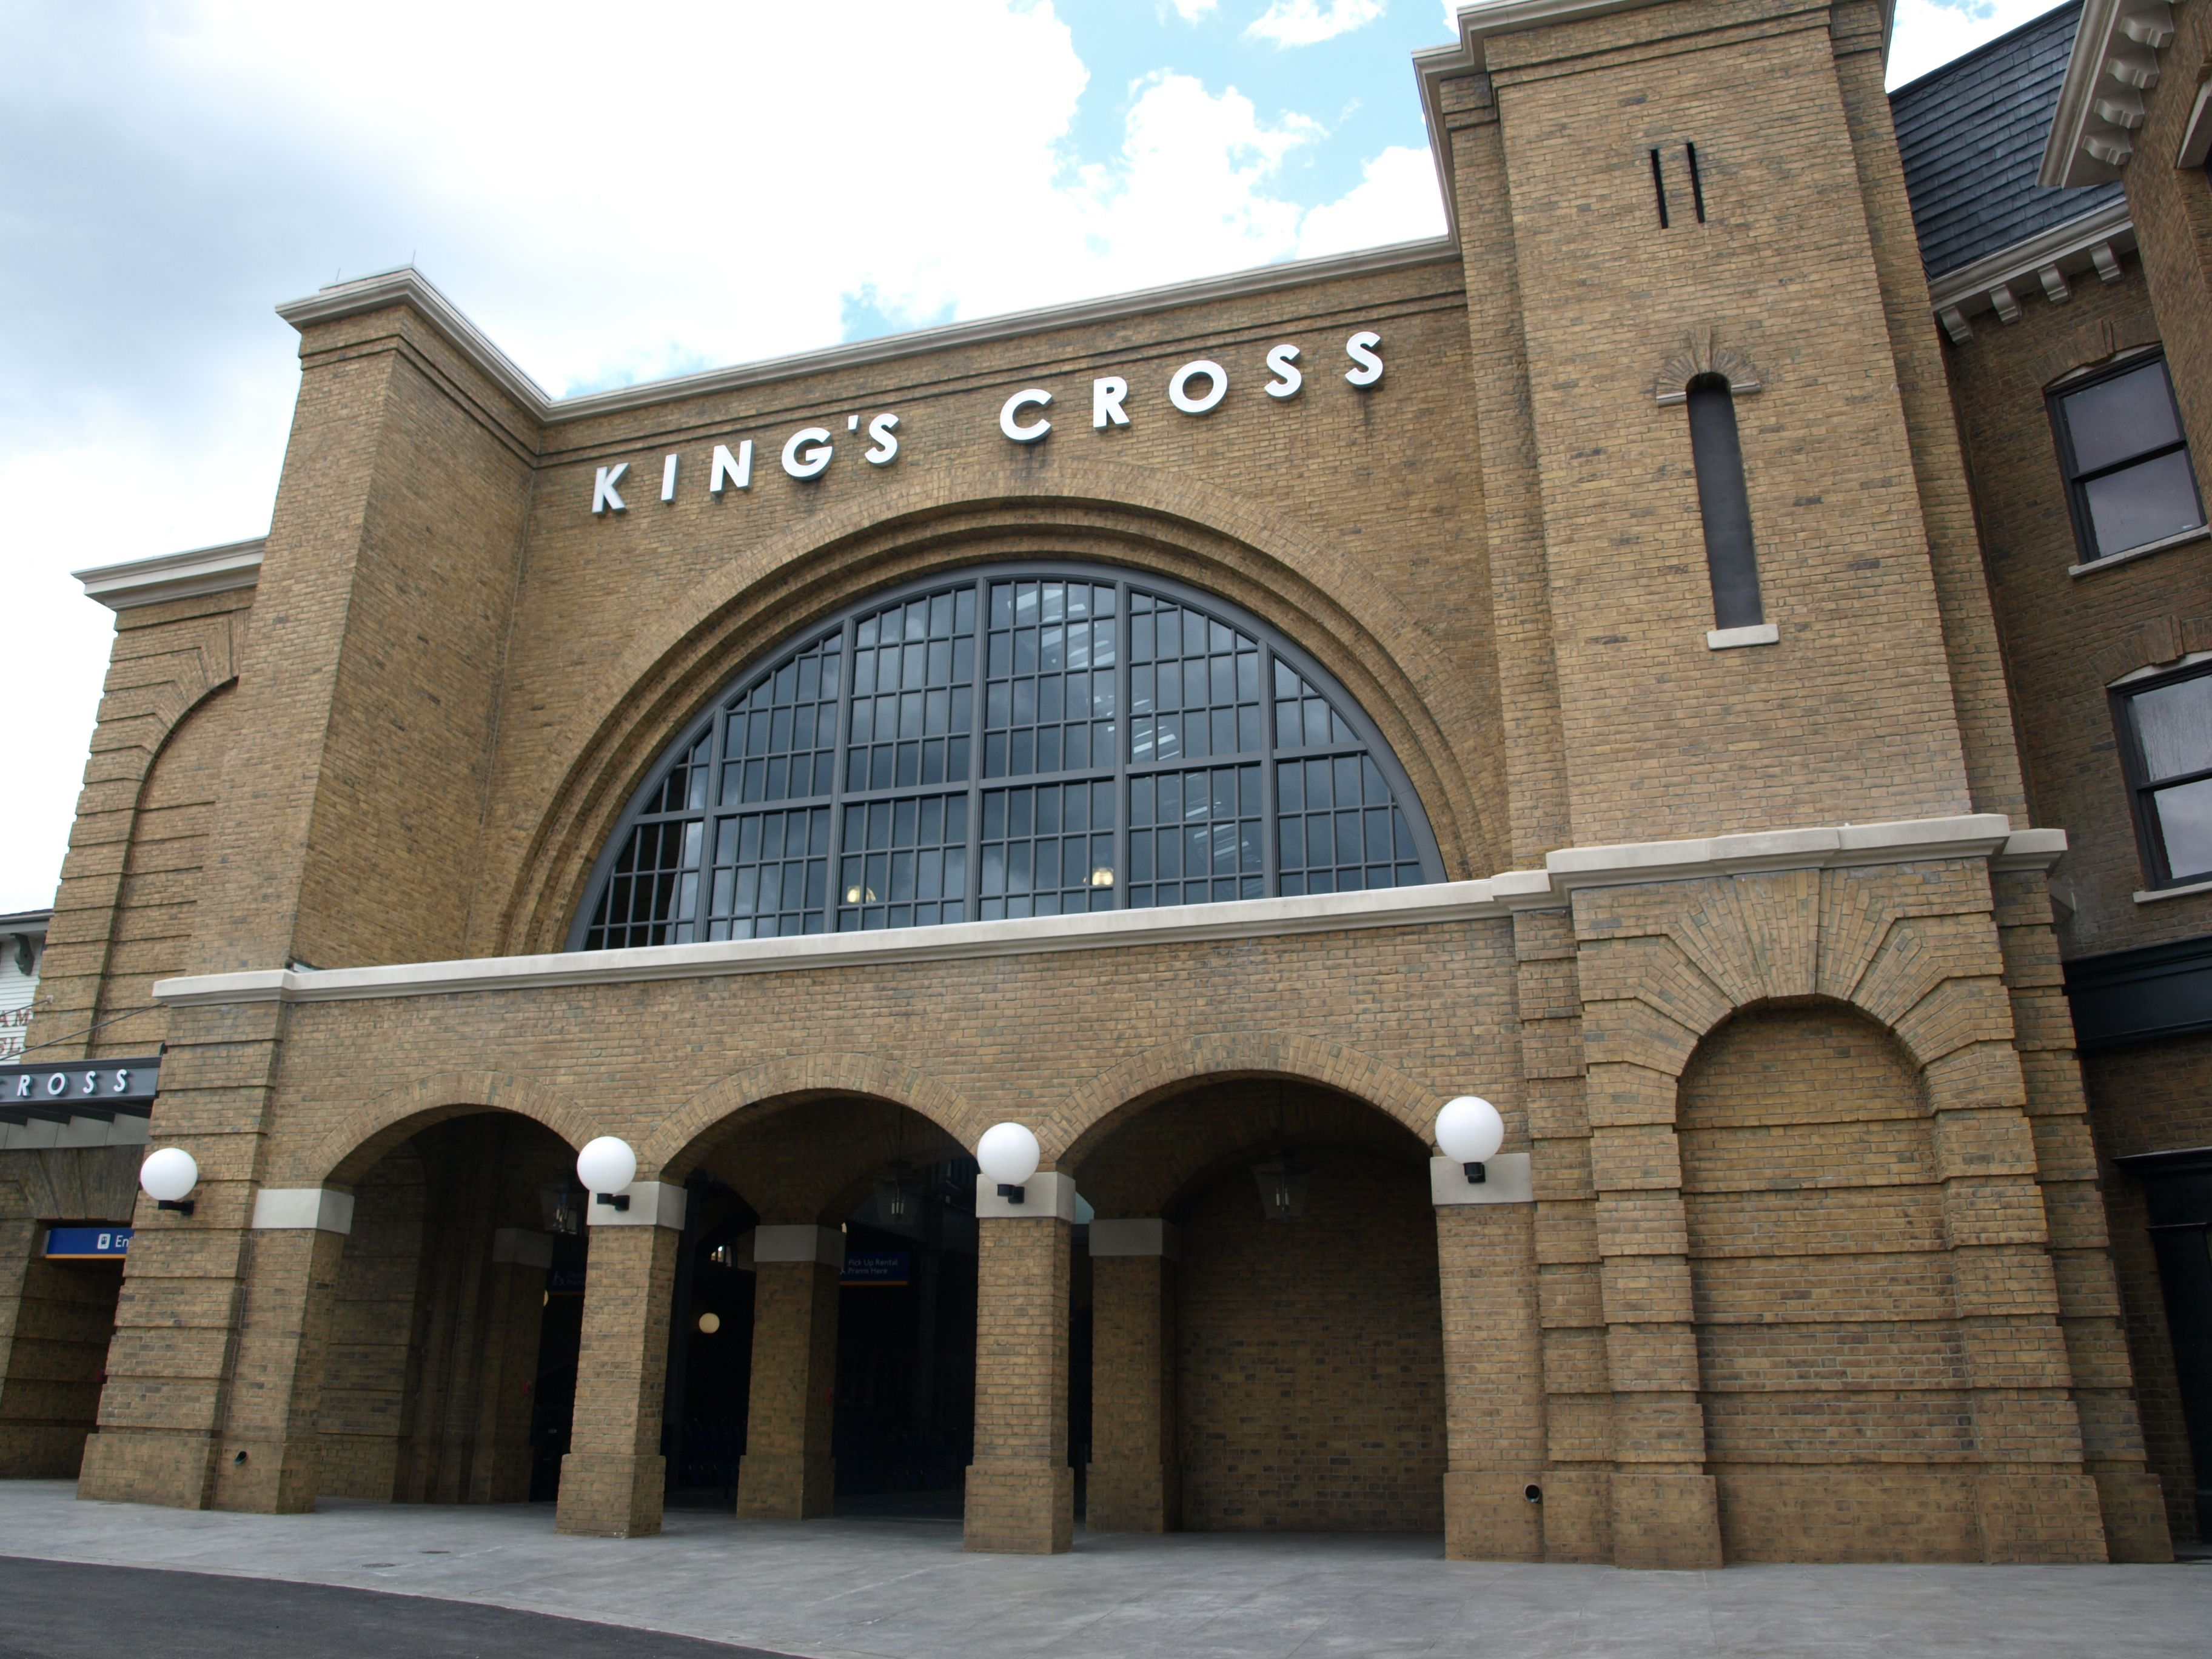 Kings Cross Station Home Of Platform 9 3 4 And The Hogwarts Express Universal Orlando Wizarding World Of Harry Potter Kings Cross Station